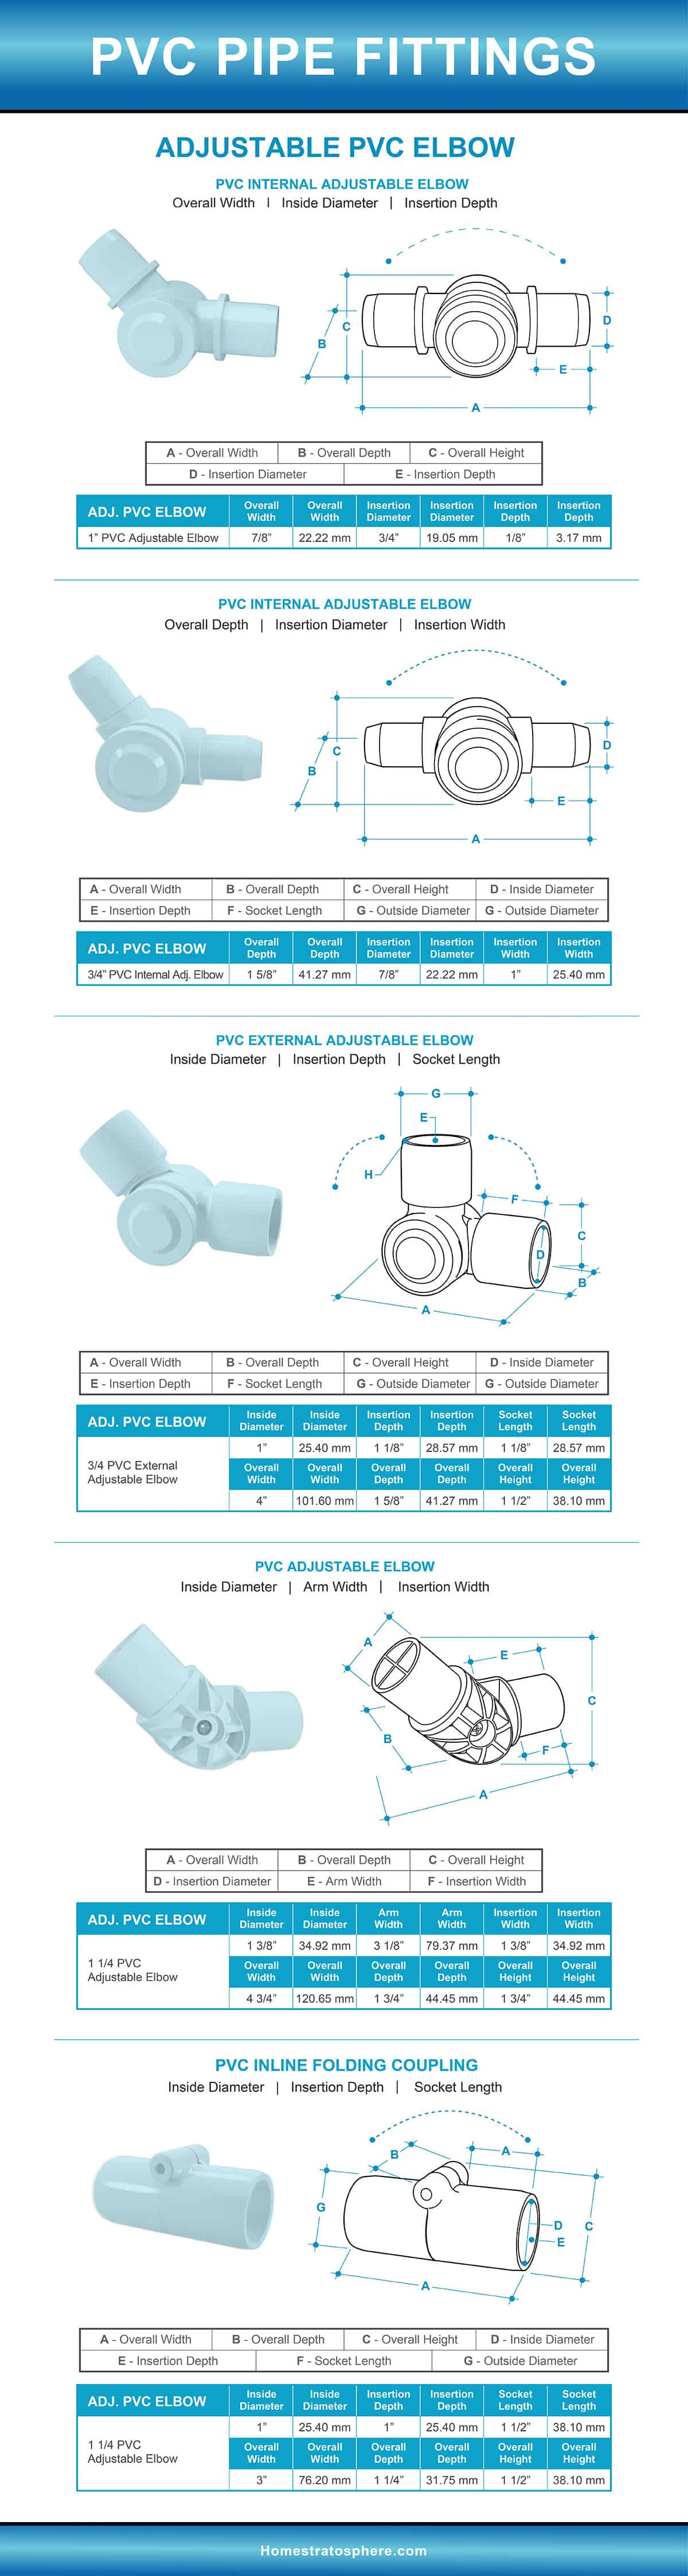 Adjustable PVC Elbow Illustration and Sizes Chart